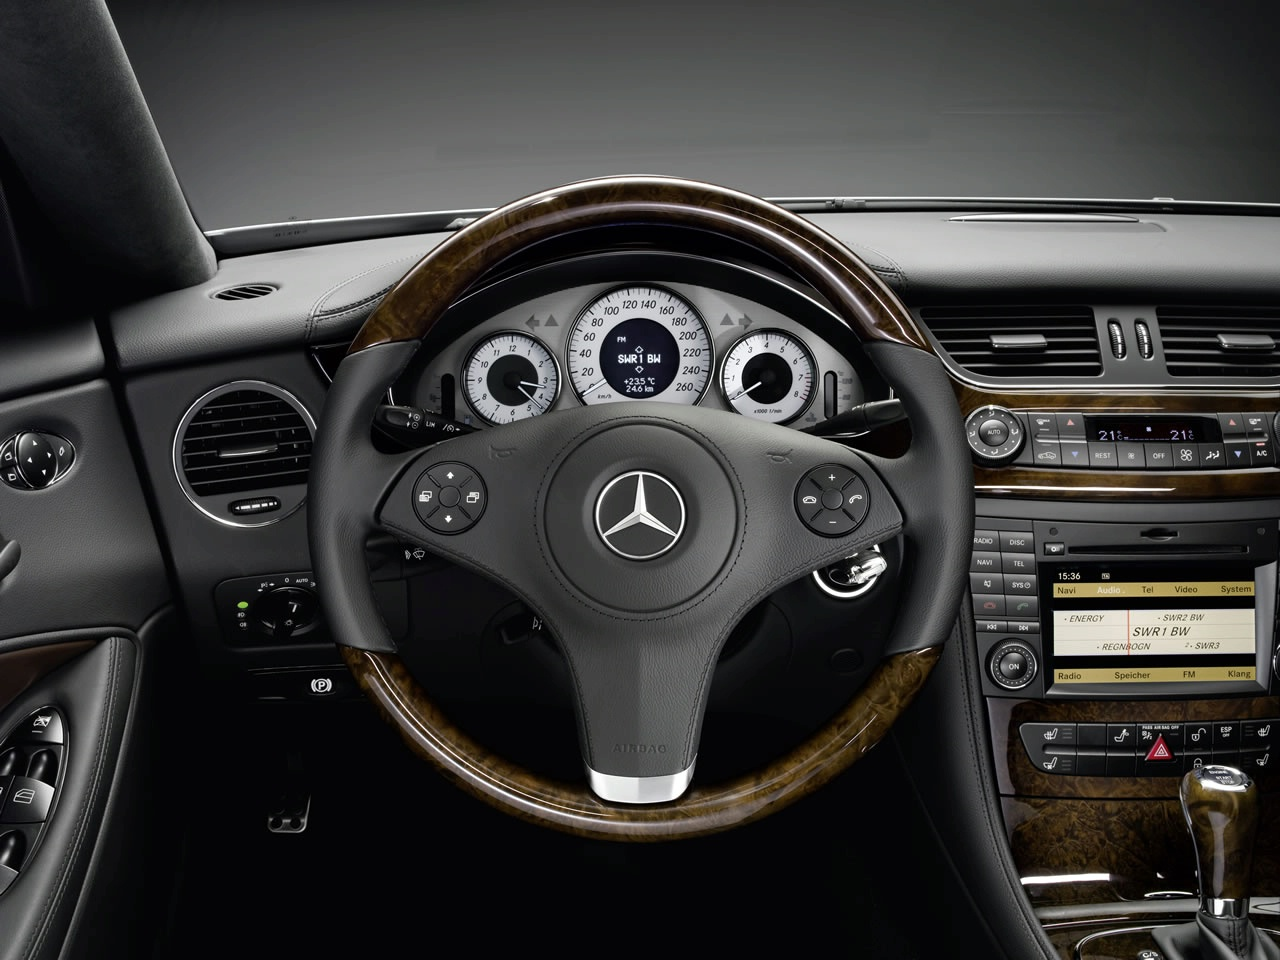 mercedes-cls-grand-edition-interior-2009-img_10 | it's your auto